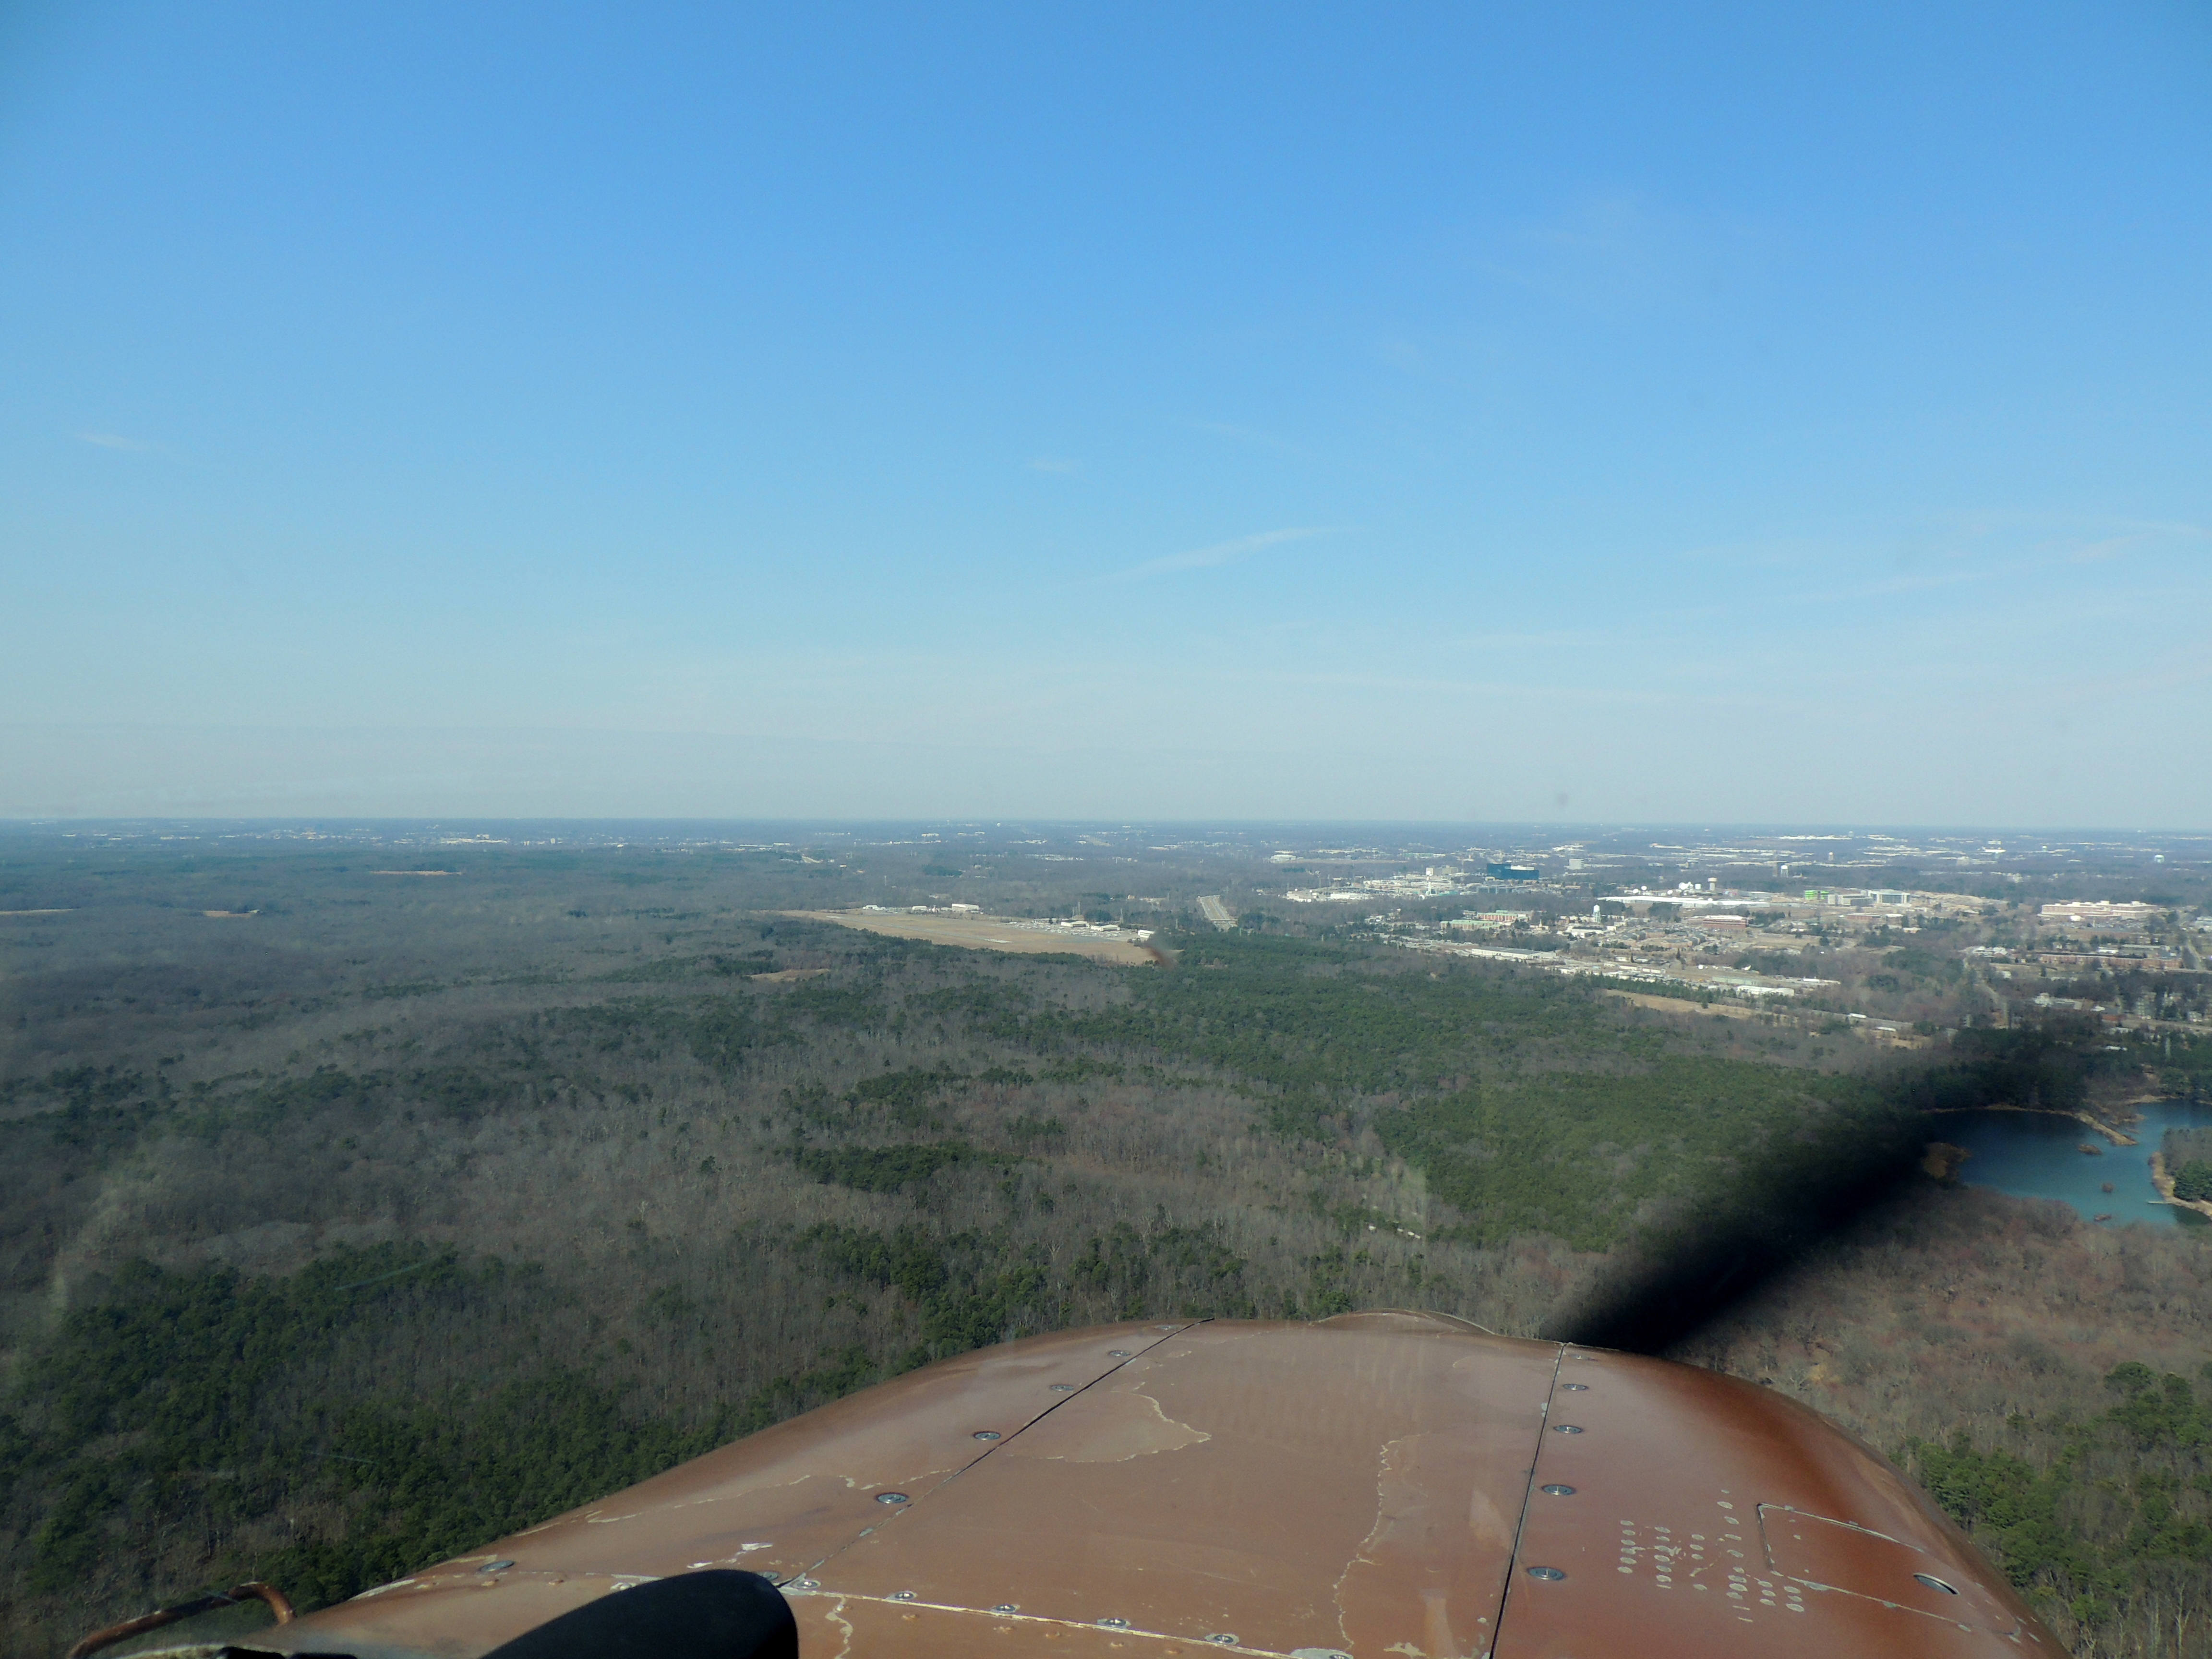 On approach to Fort Meade (Tipton) Maryland